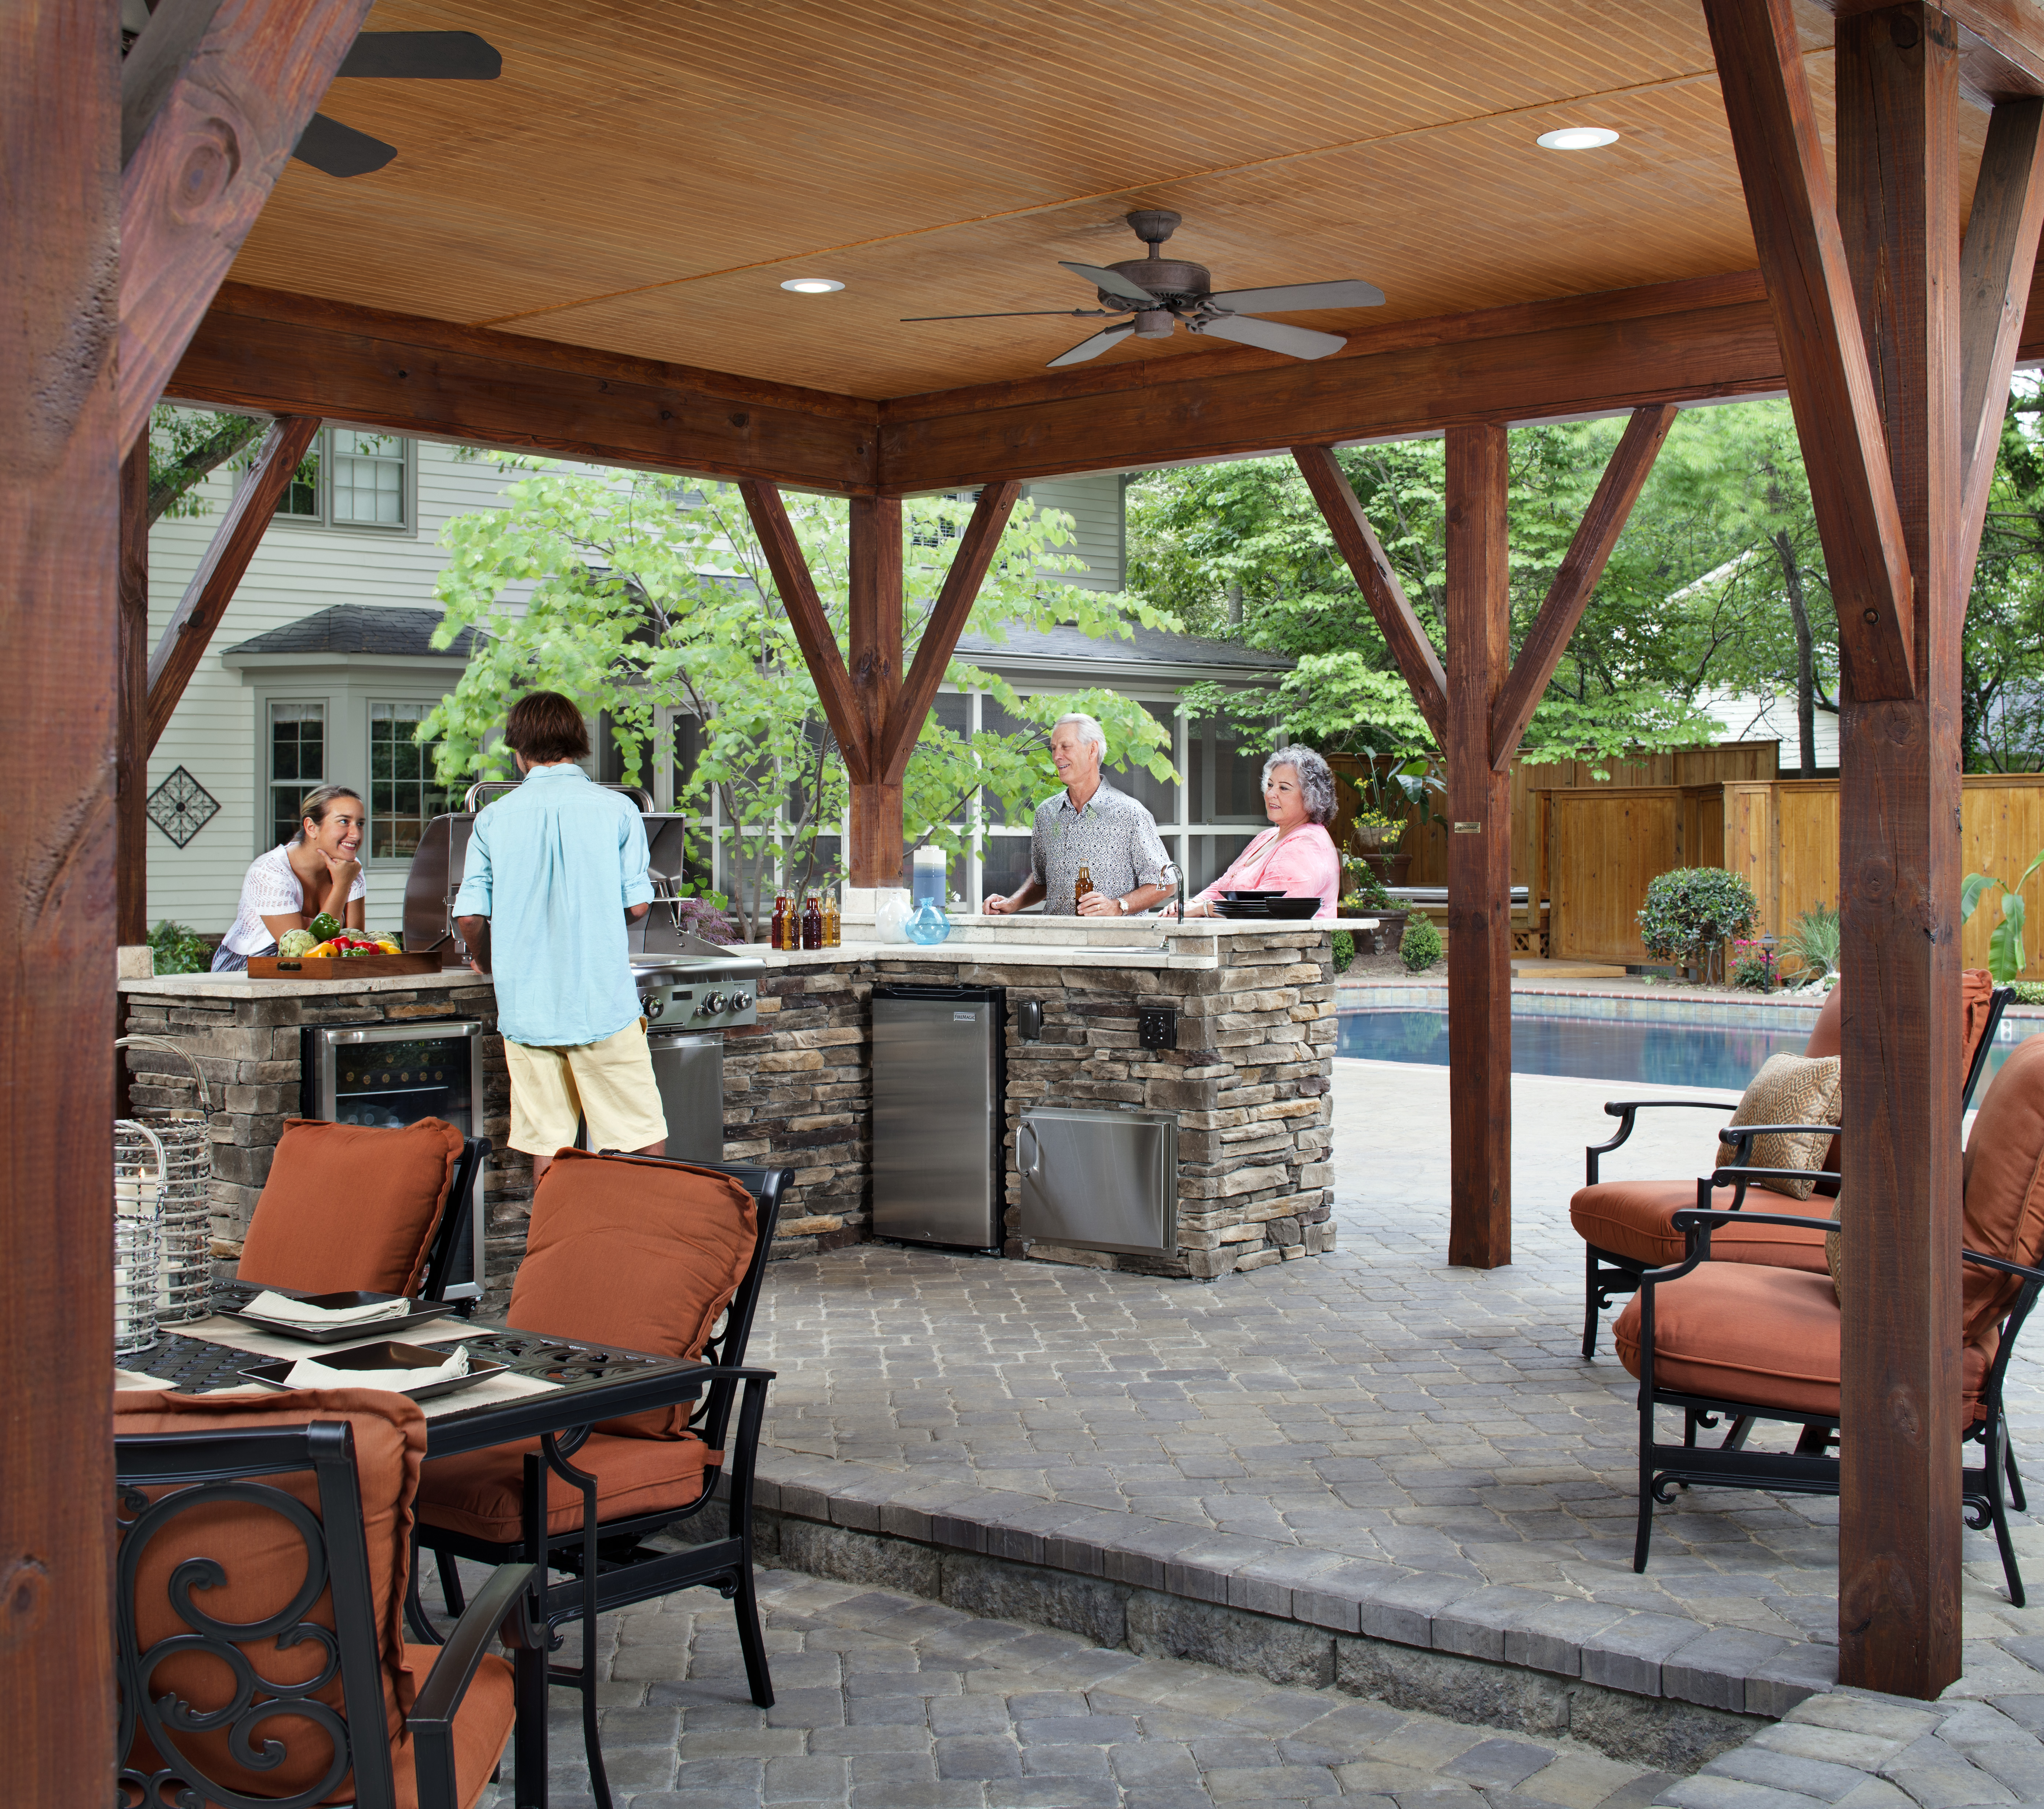 Archadeck Of Charlotte Designed And Built This Covered Outdoor Kitchen With  A Cabana And All Of